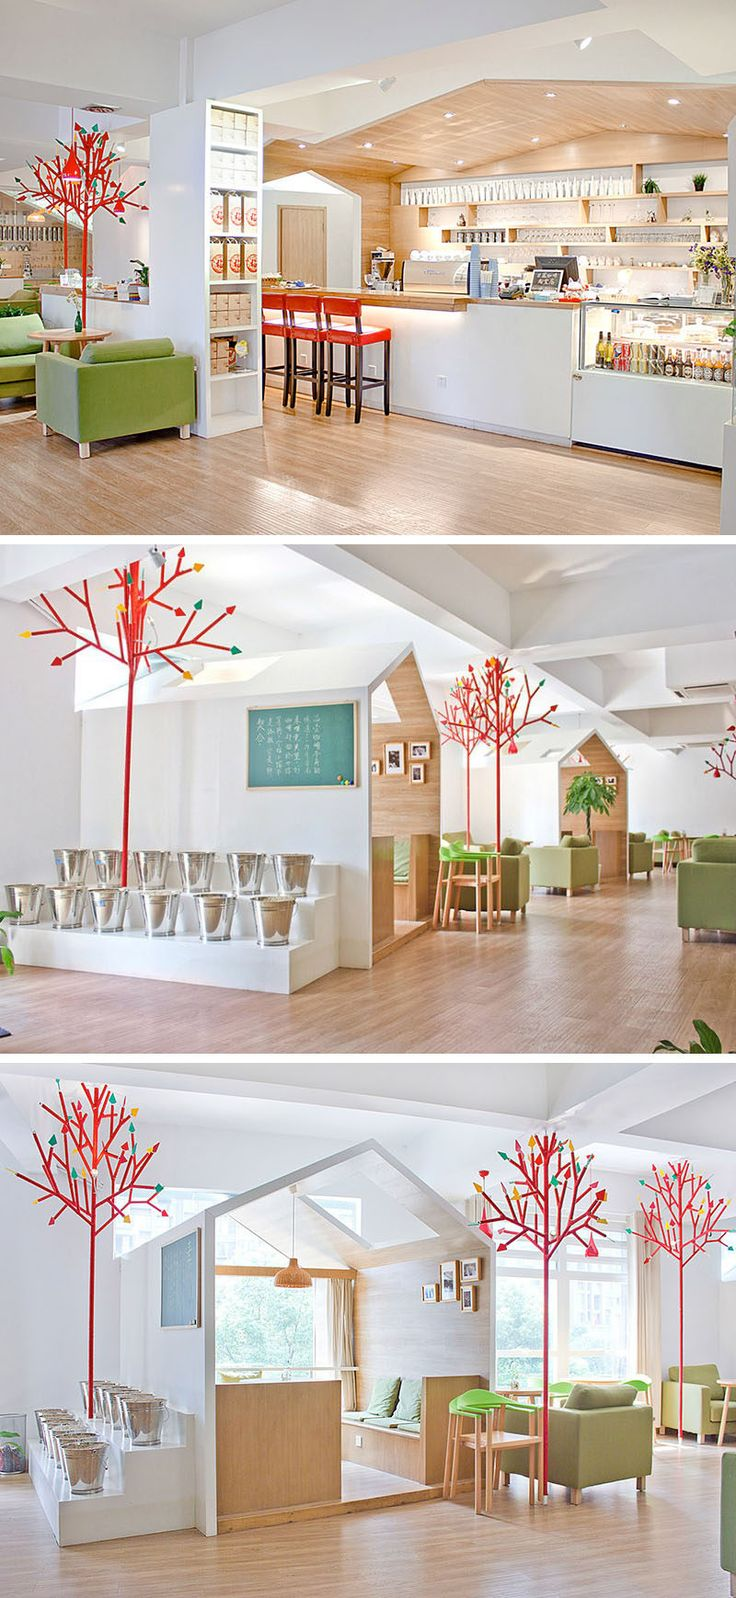 289 best Dining Spaces images on Pinterest | Cafe restaurant ...